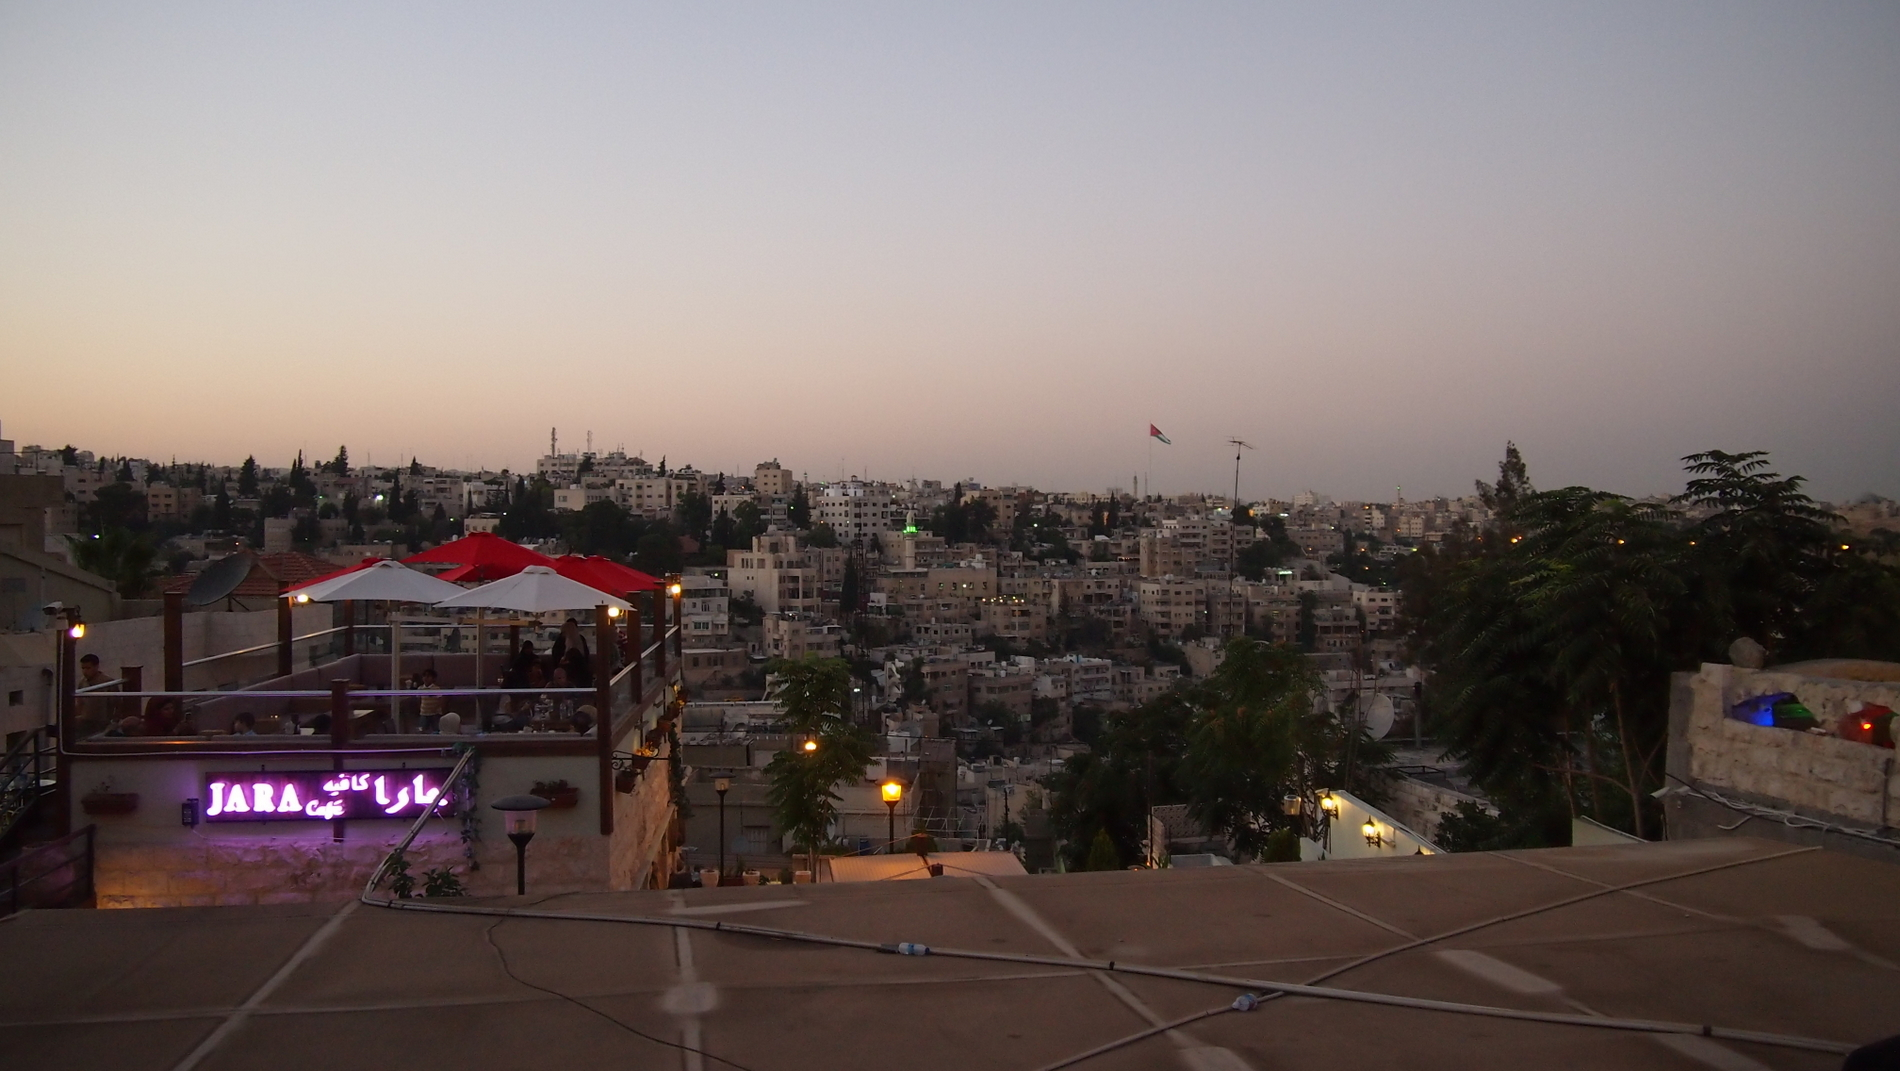 Rainbow Street in Amman is a popular location among locals